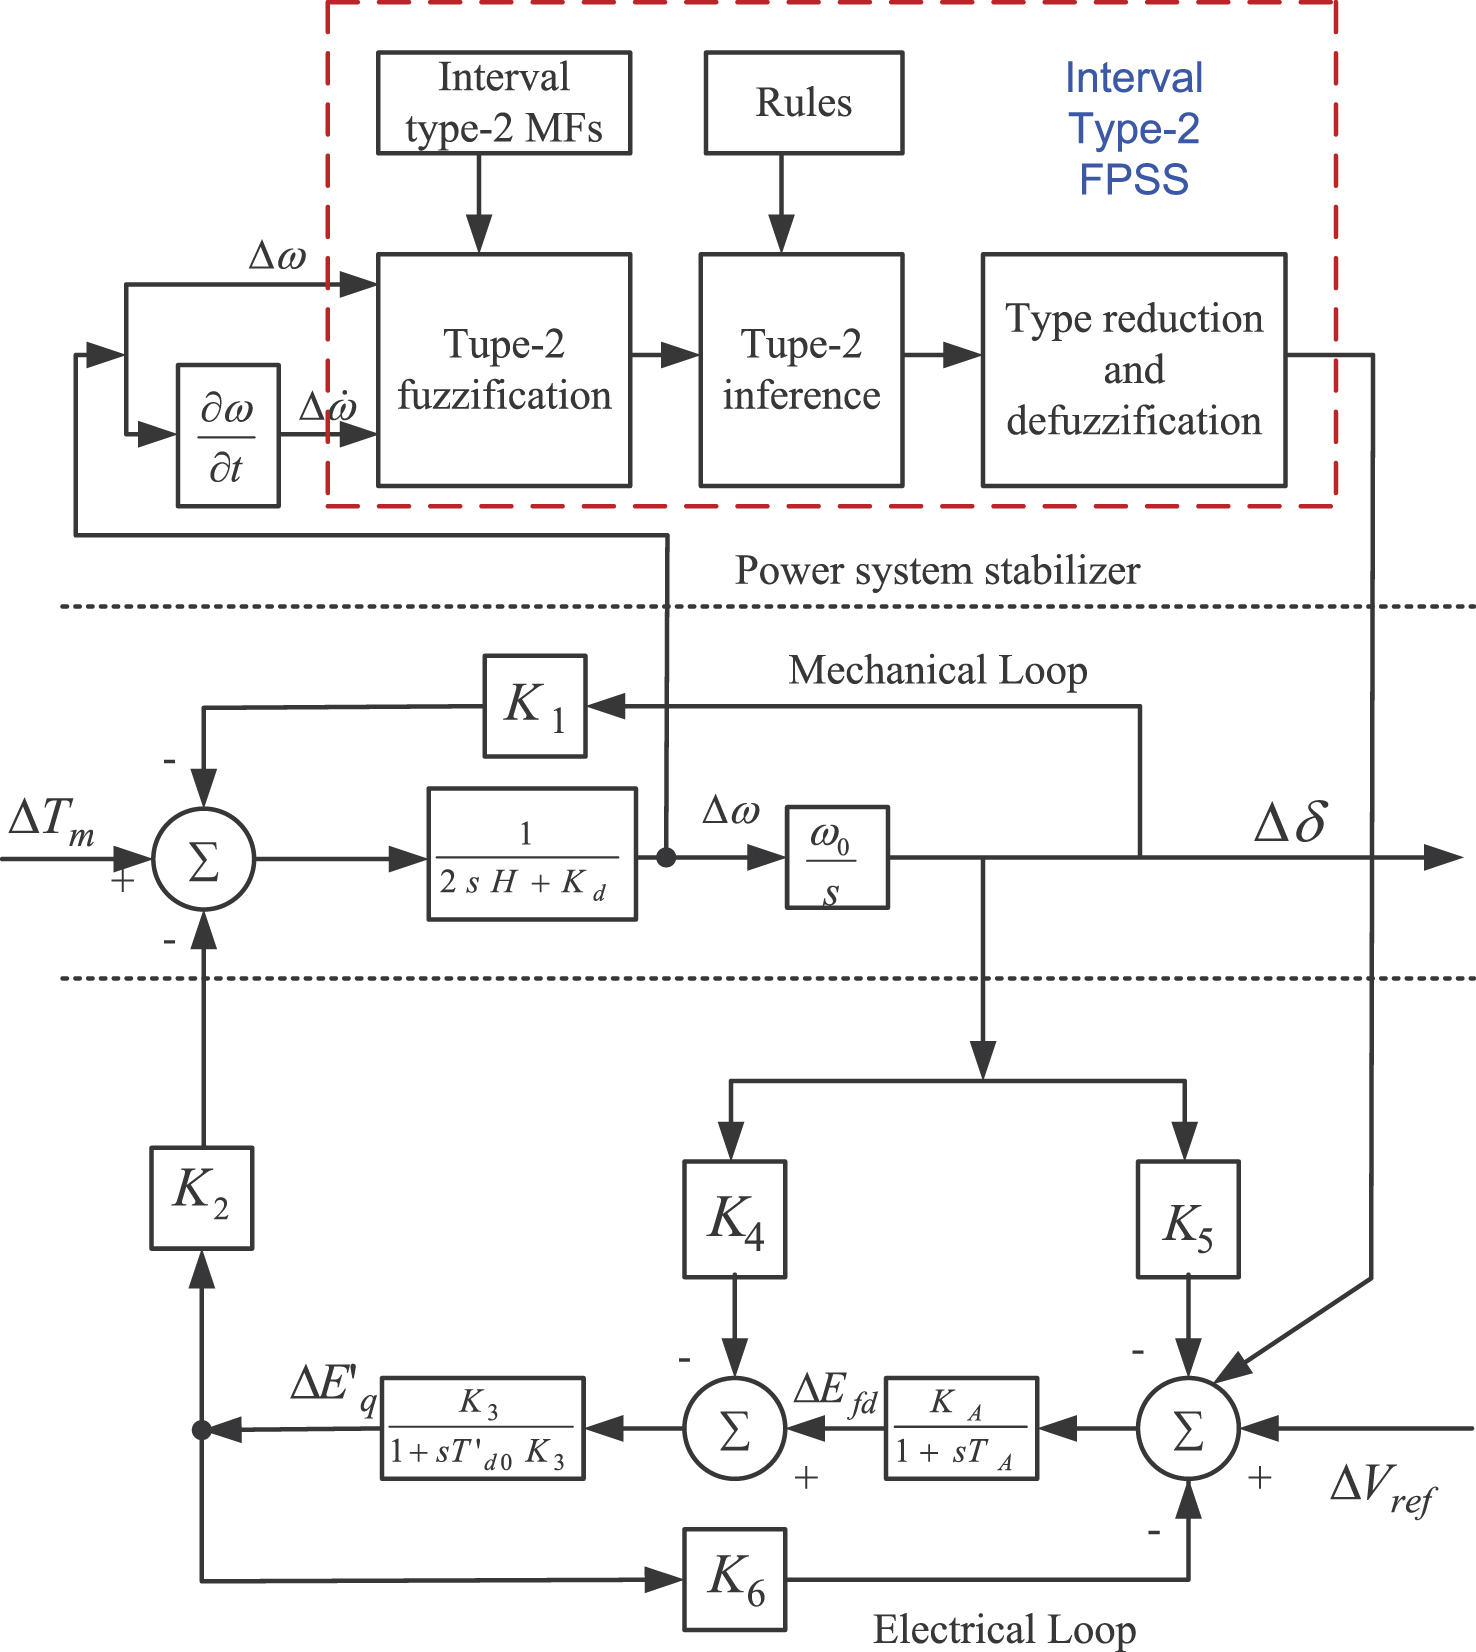 Simple Block Diagram Power System Stabilizer Electrical Wiring Design And Small Signal Stability Enhancement Of Using Electronic